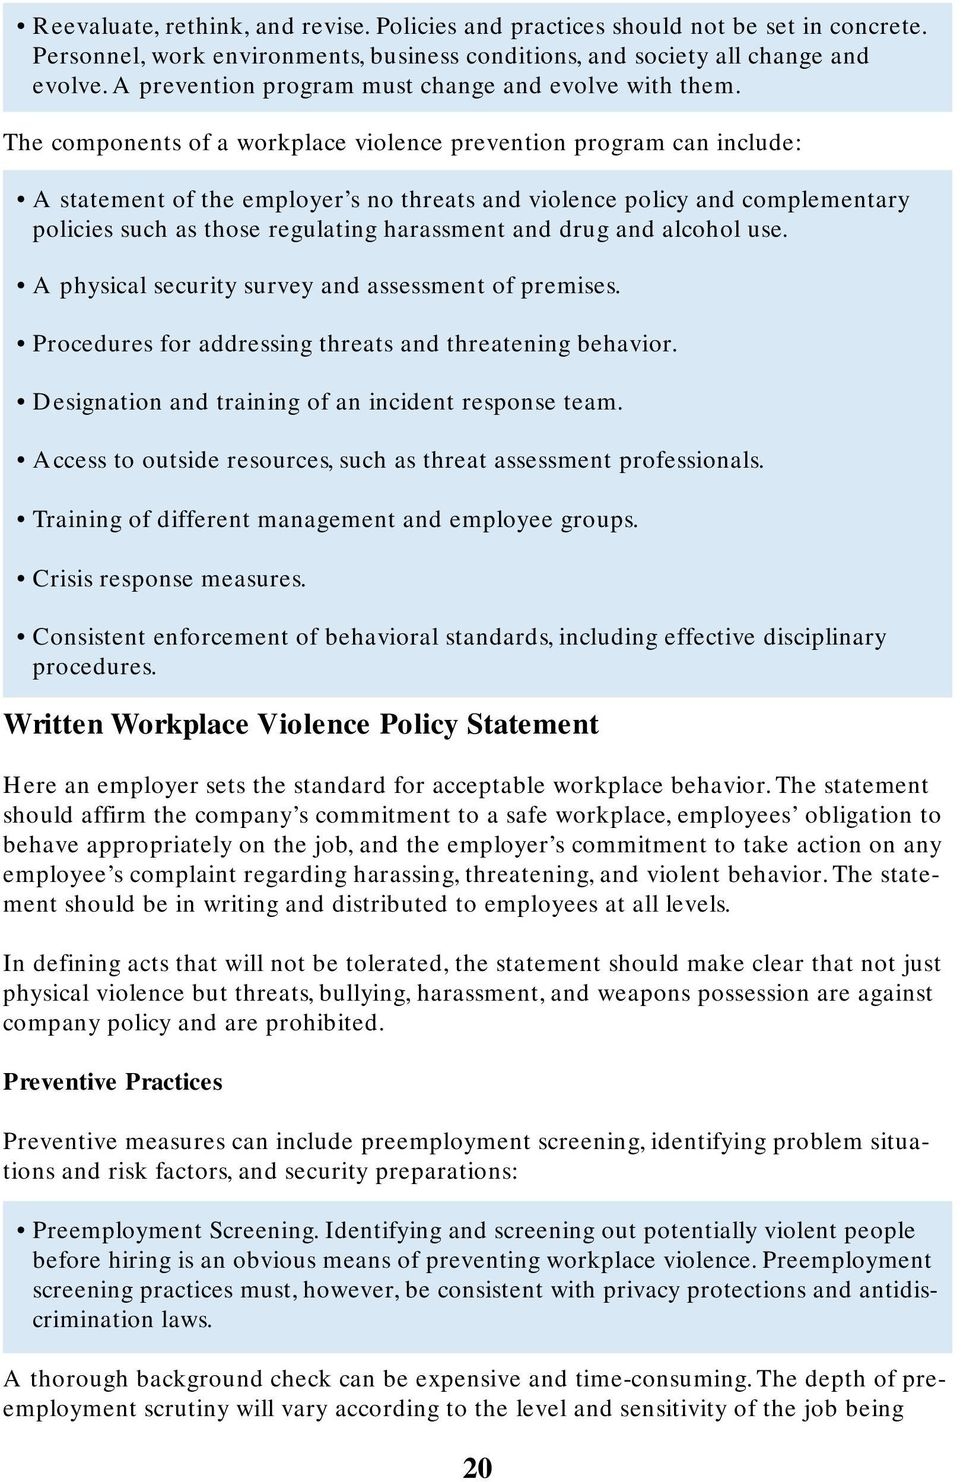 The components of a workplace violence prevention program can include: A statement of the employer s no threats and violence policy and complementary policies such as those regulating harassment and